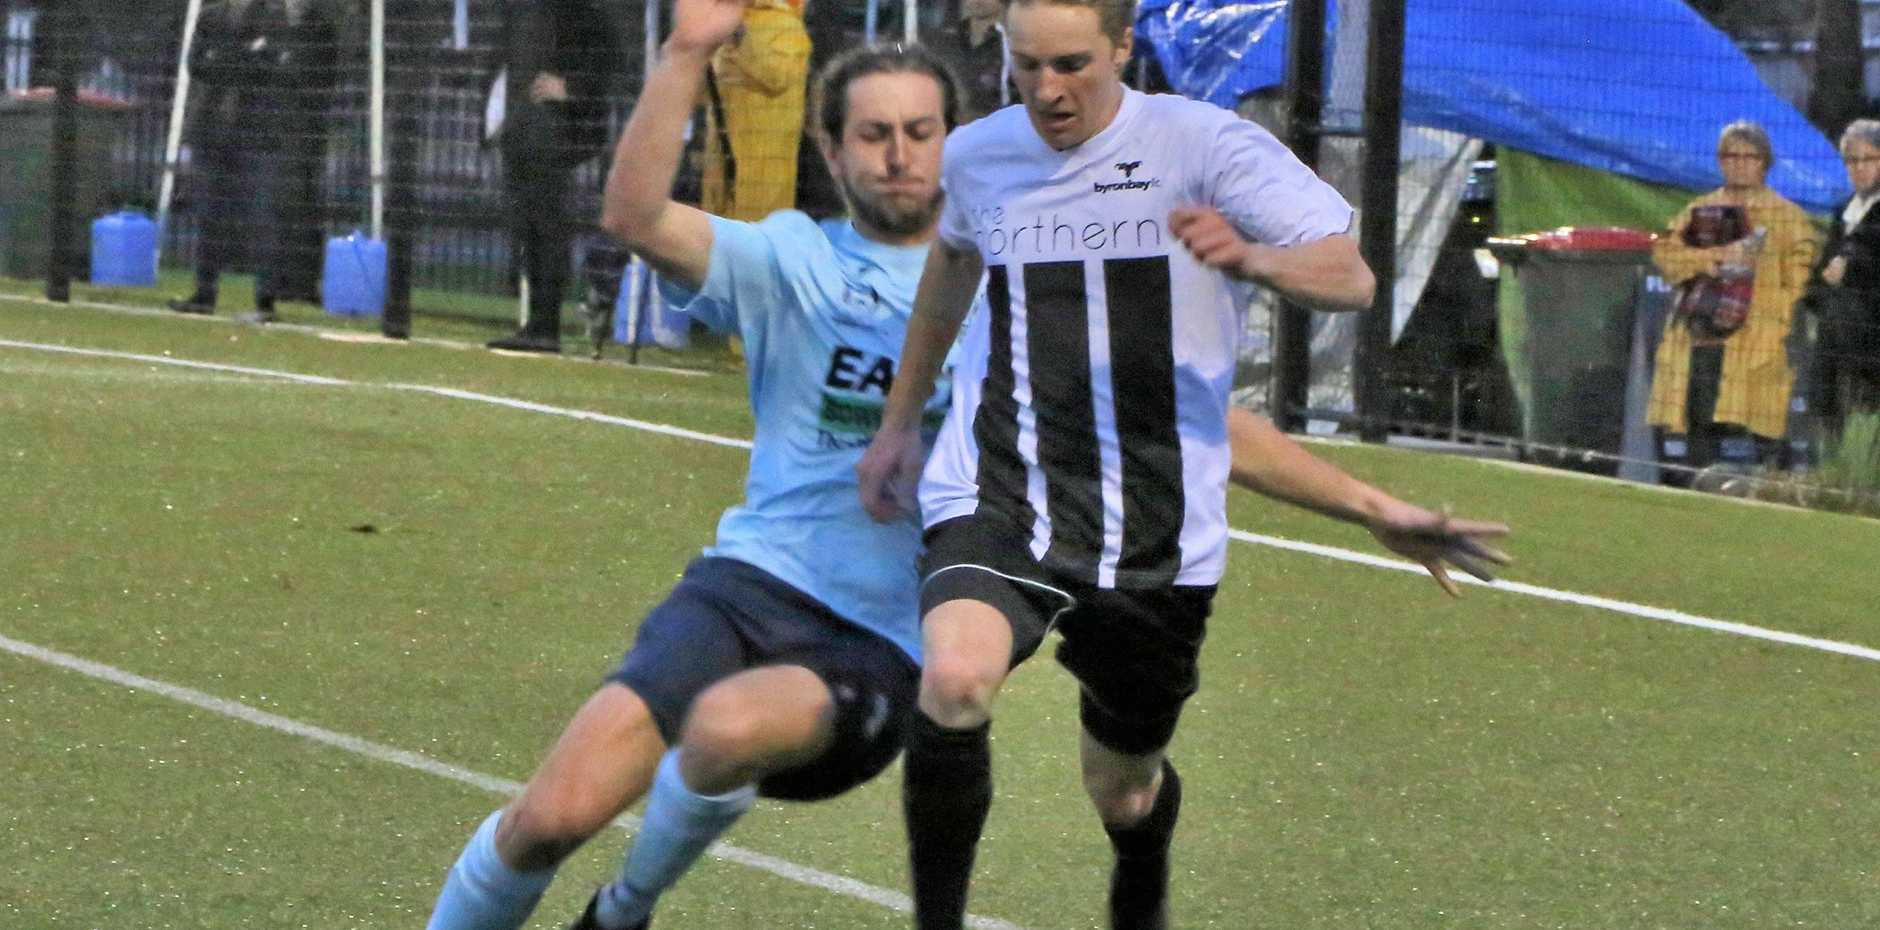 GAME CHANGER: A moment later Ronan Krarup's right leg was shattered in a horrific tackle early in round 6 of the FFA Cup against Maitland NPL in Newcastle in June 2017,